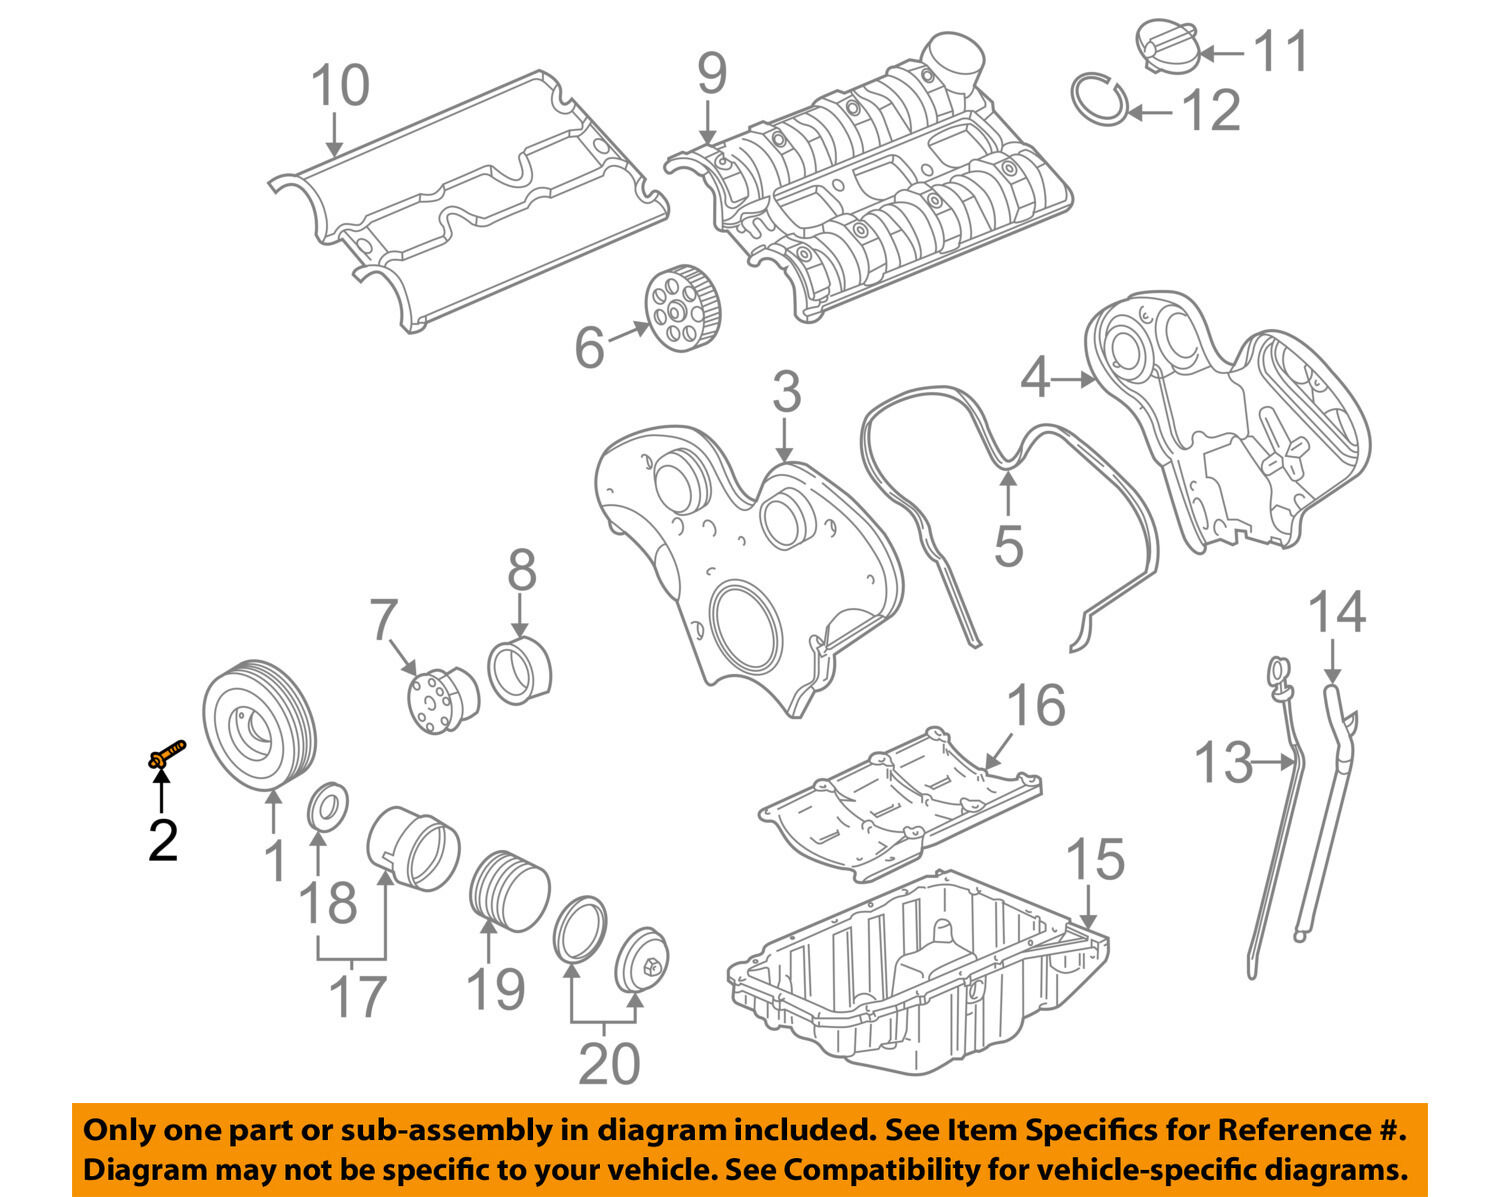 Parts Of A Pulley Diagram Trusted Wiring Diagrams Engine Gm Oem Crankshaft Crank Bolt 11094881 16 02 Harness